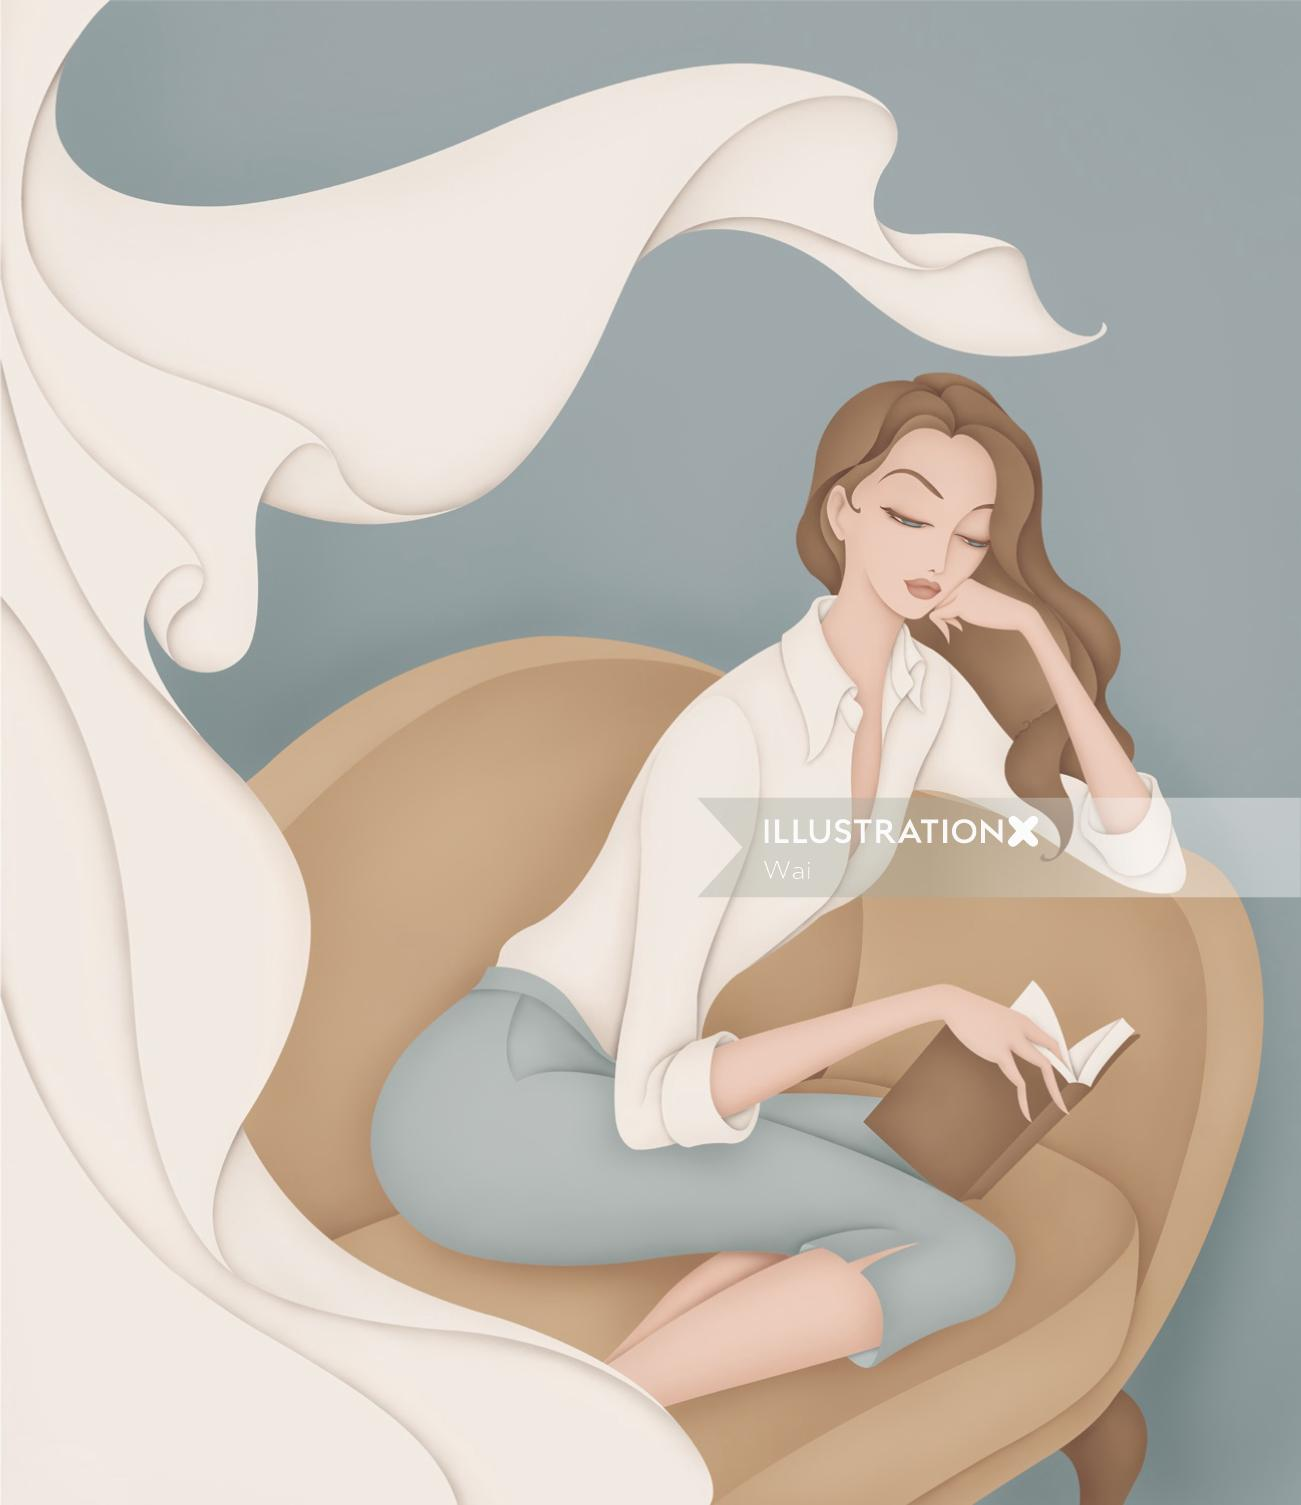 Woman reading on chaise lounge wearing classic white shirt